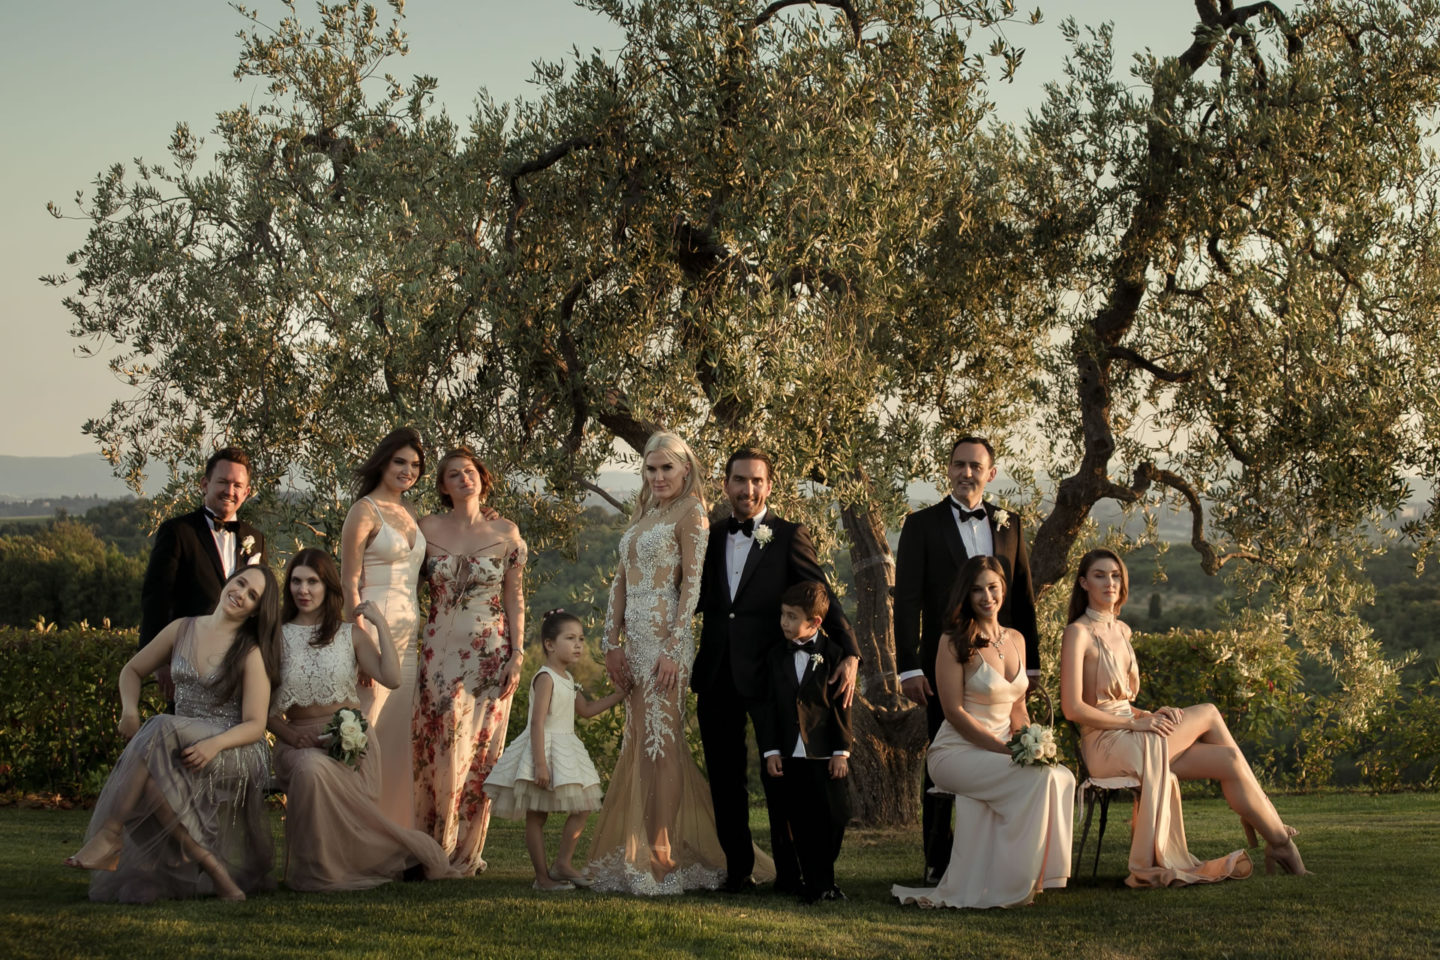 Famiy Group :: Exciting wedding in the countryside of Siena :: Luxury wedding photography - 42 :: Famiy Group